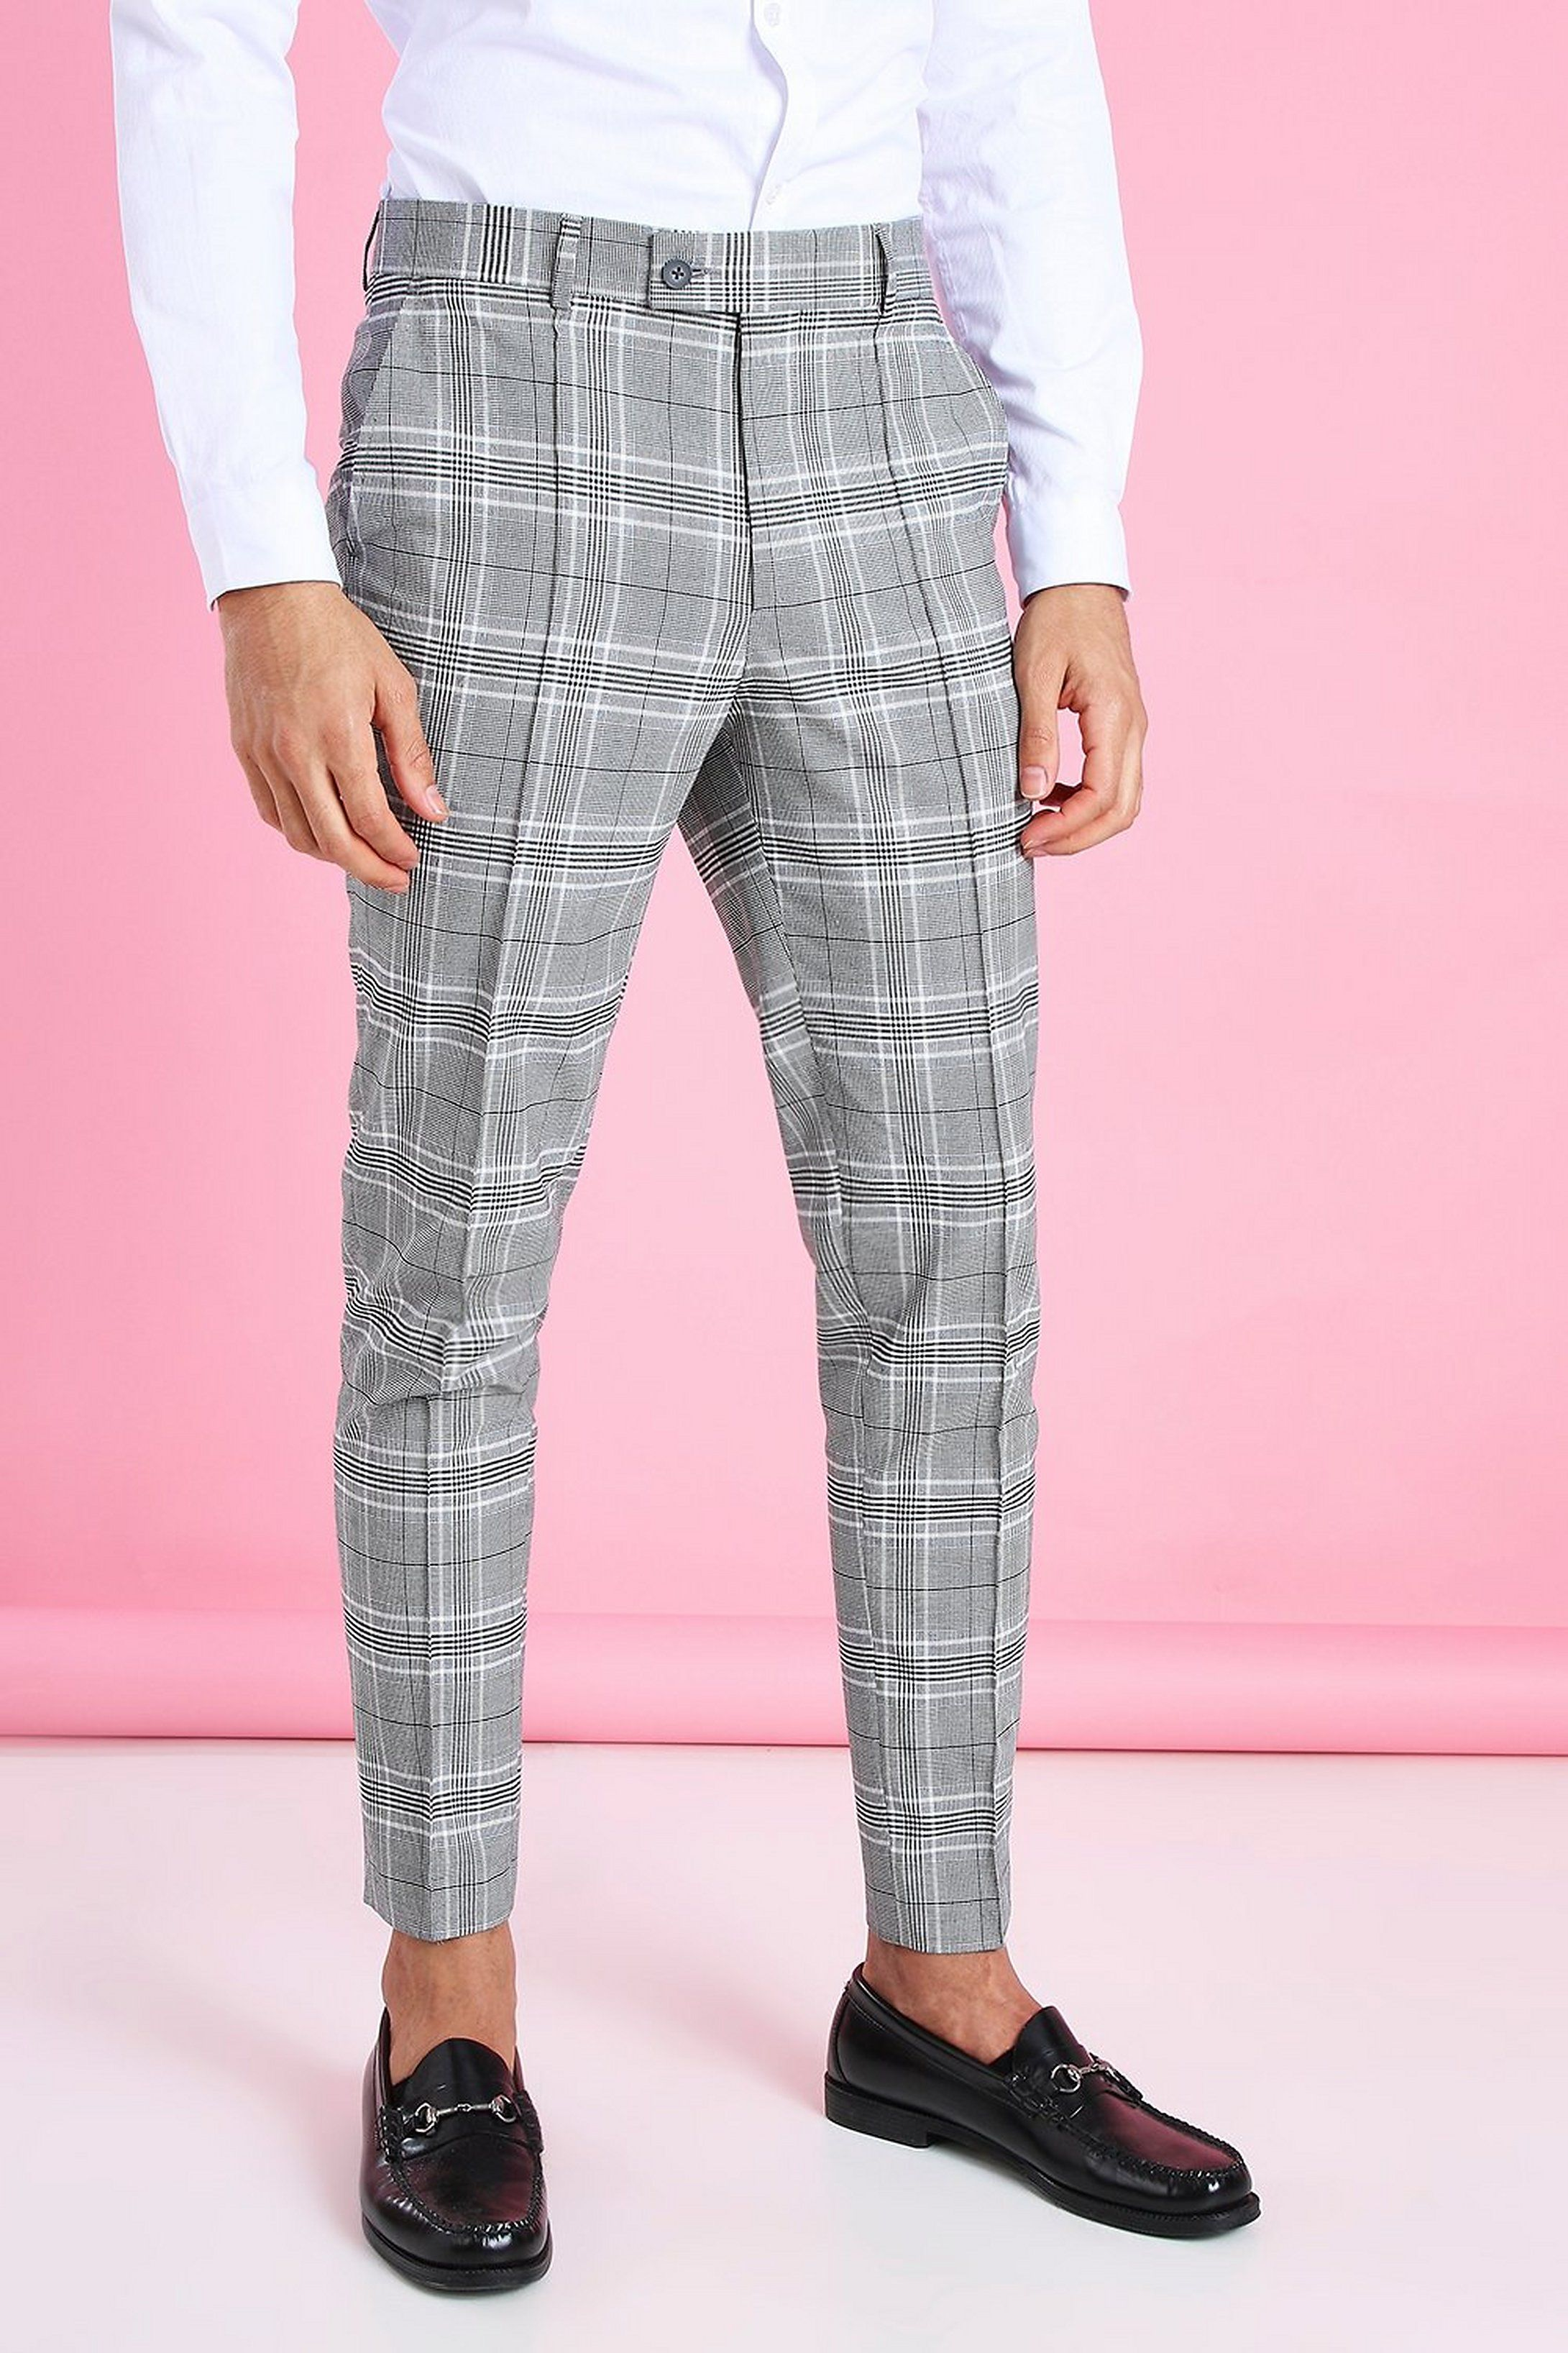 Men S Skinny Tapered Smart Check Pants With Pintuck Boohoo In 2021 Streetwear Men Outfits Stylish Men Casual Mens Plaid Pants [ 3272 x 2181 Pixel ]